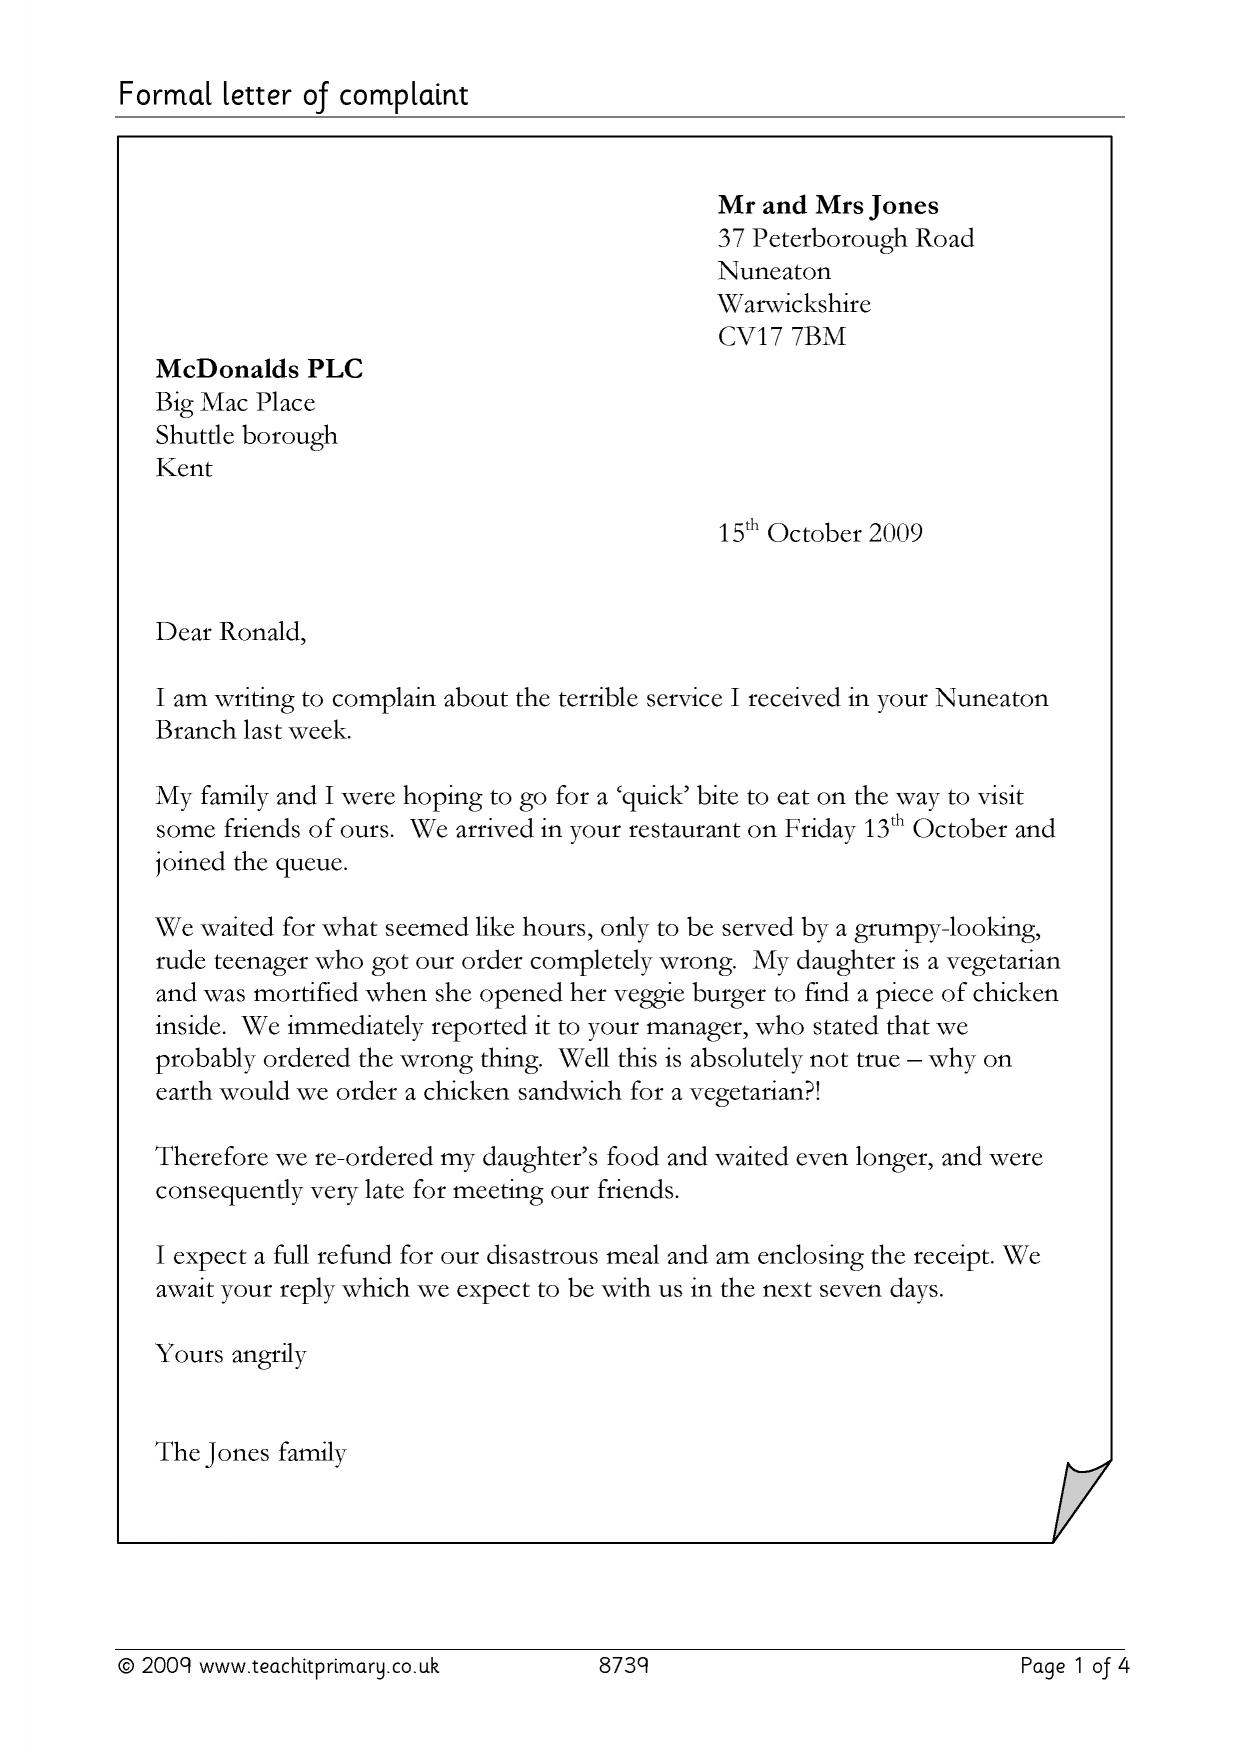 formal letter of complaint letter writing home page resource thumbnail